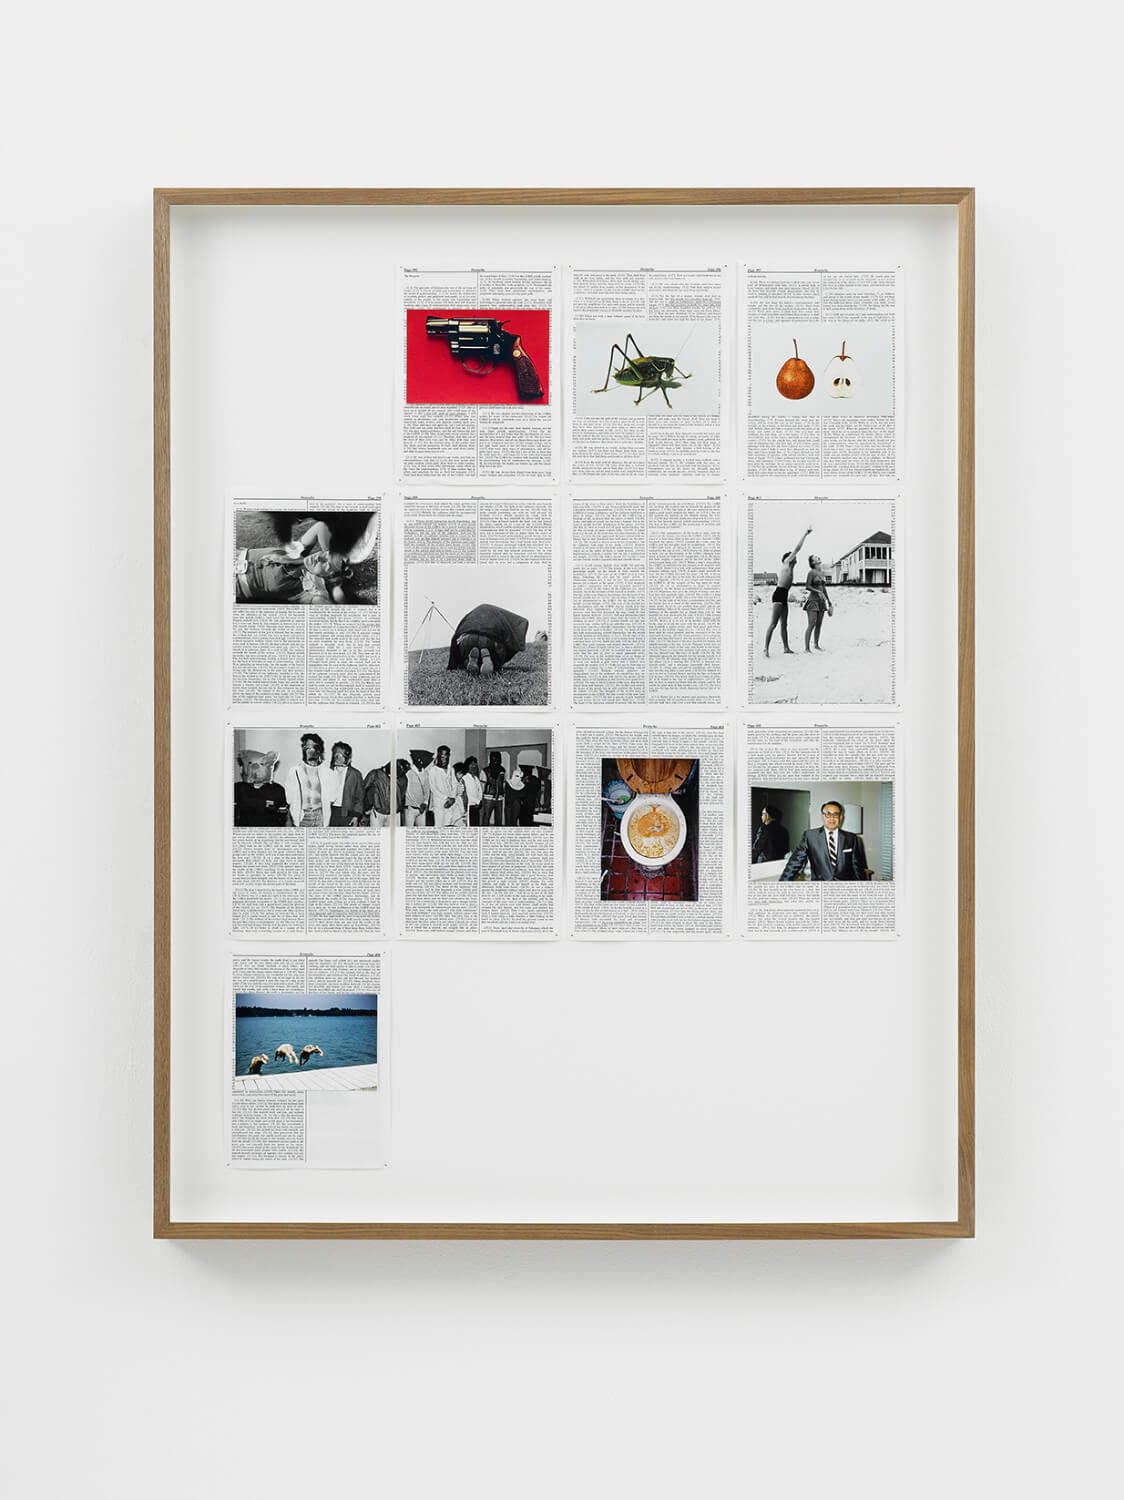 Proverbs, Divine Violence, 2013, King James Bible, Hahnemühle print, brass pins, 1085mm x 535mm, Image courtesy of Lisson Gallery, Londo